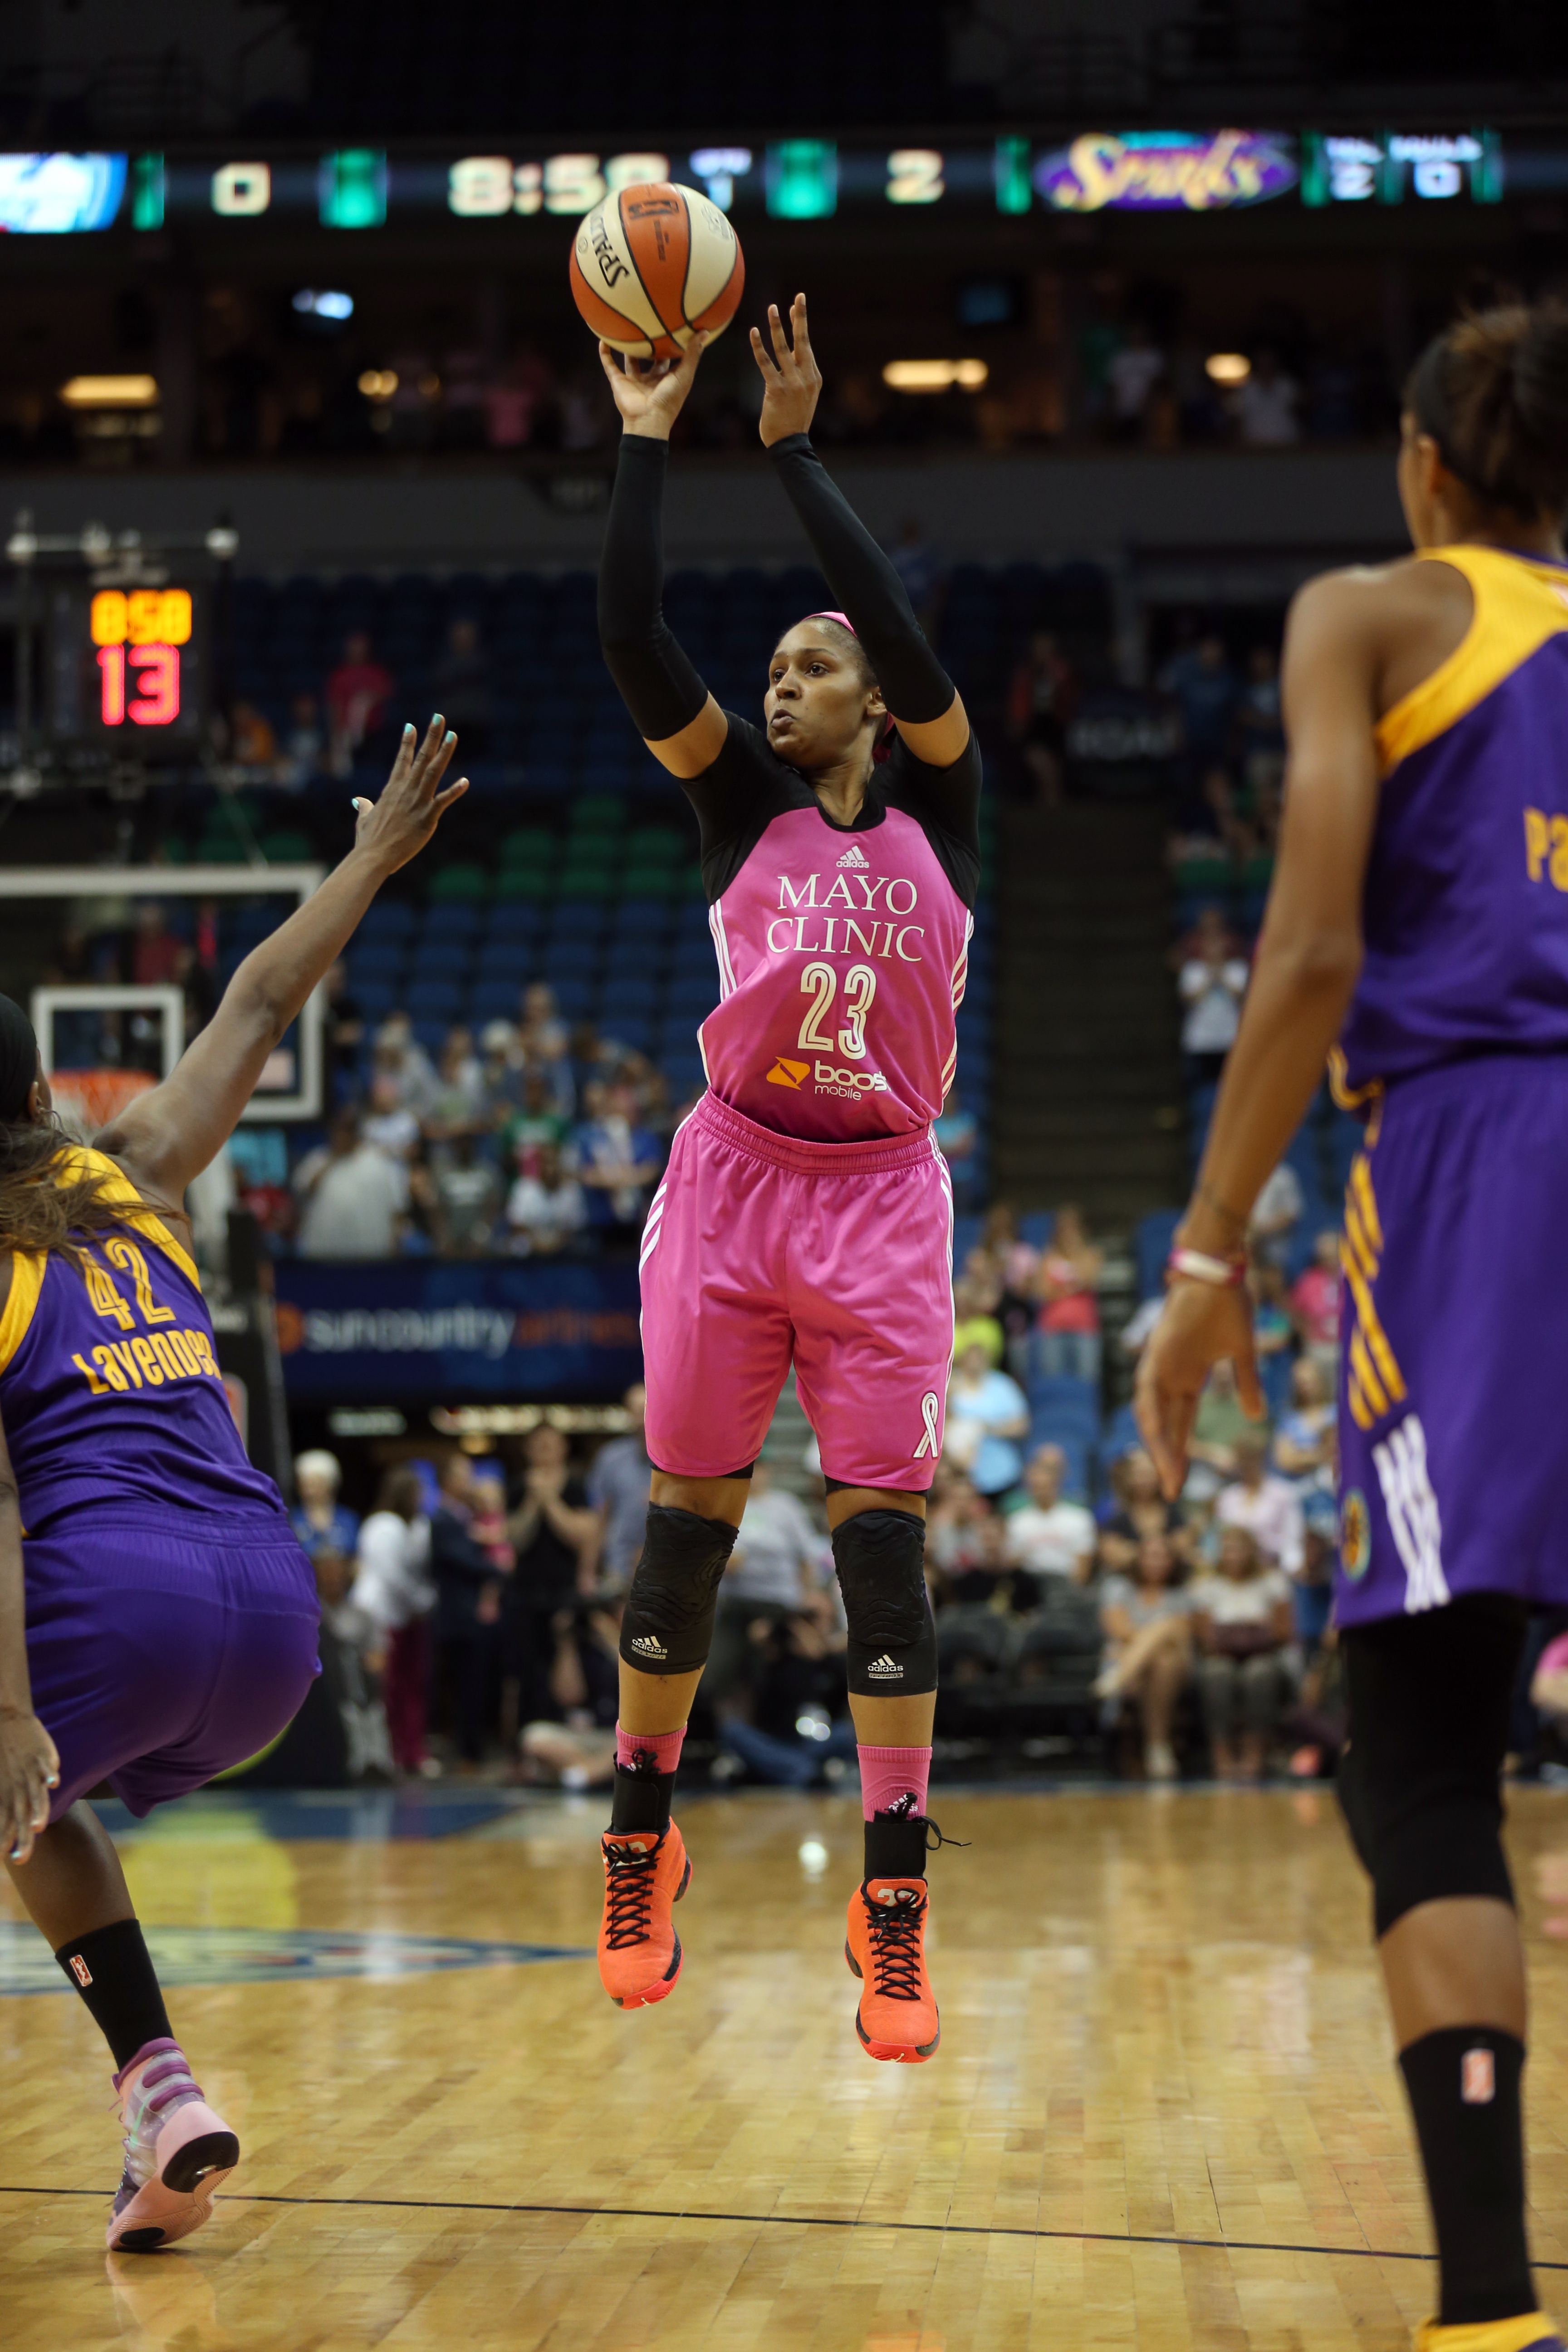 MINNEAPOLIS, MN - AUGUST 9: Maya Moore #23 of the Minnesota Lynx shoots the ball against the Los Angeles Sparks on August 9, 2015 at Target Center in Minneapolis, Minnesota. (Photo by Jordan Johnson/NBAE via Getty Images)